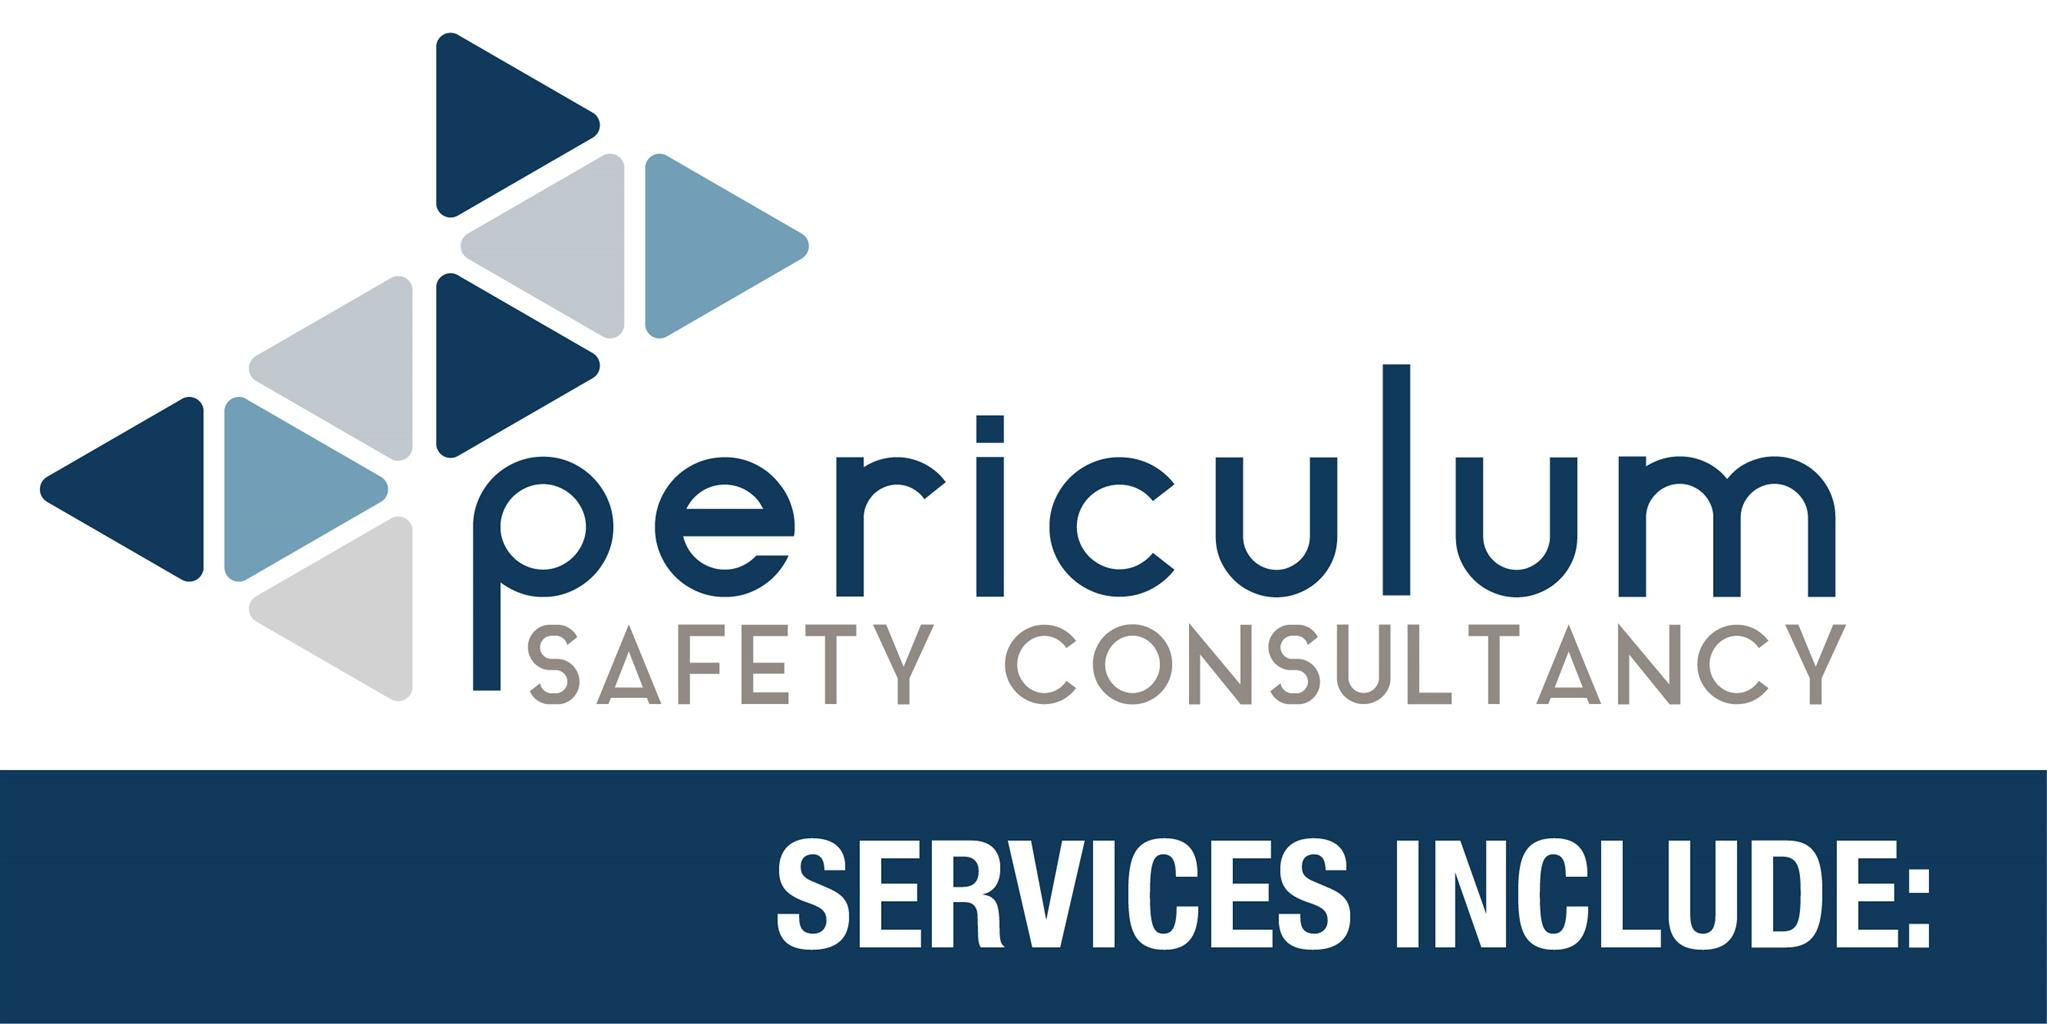 Safety Consultancy | Safety Files